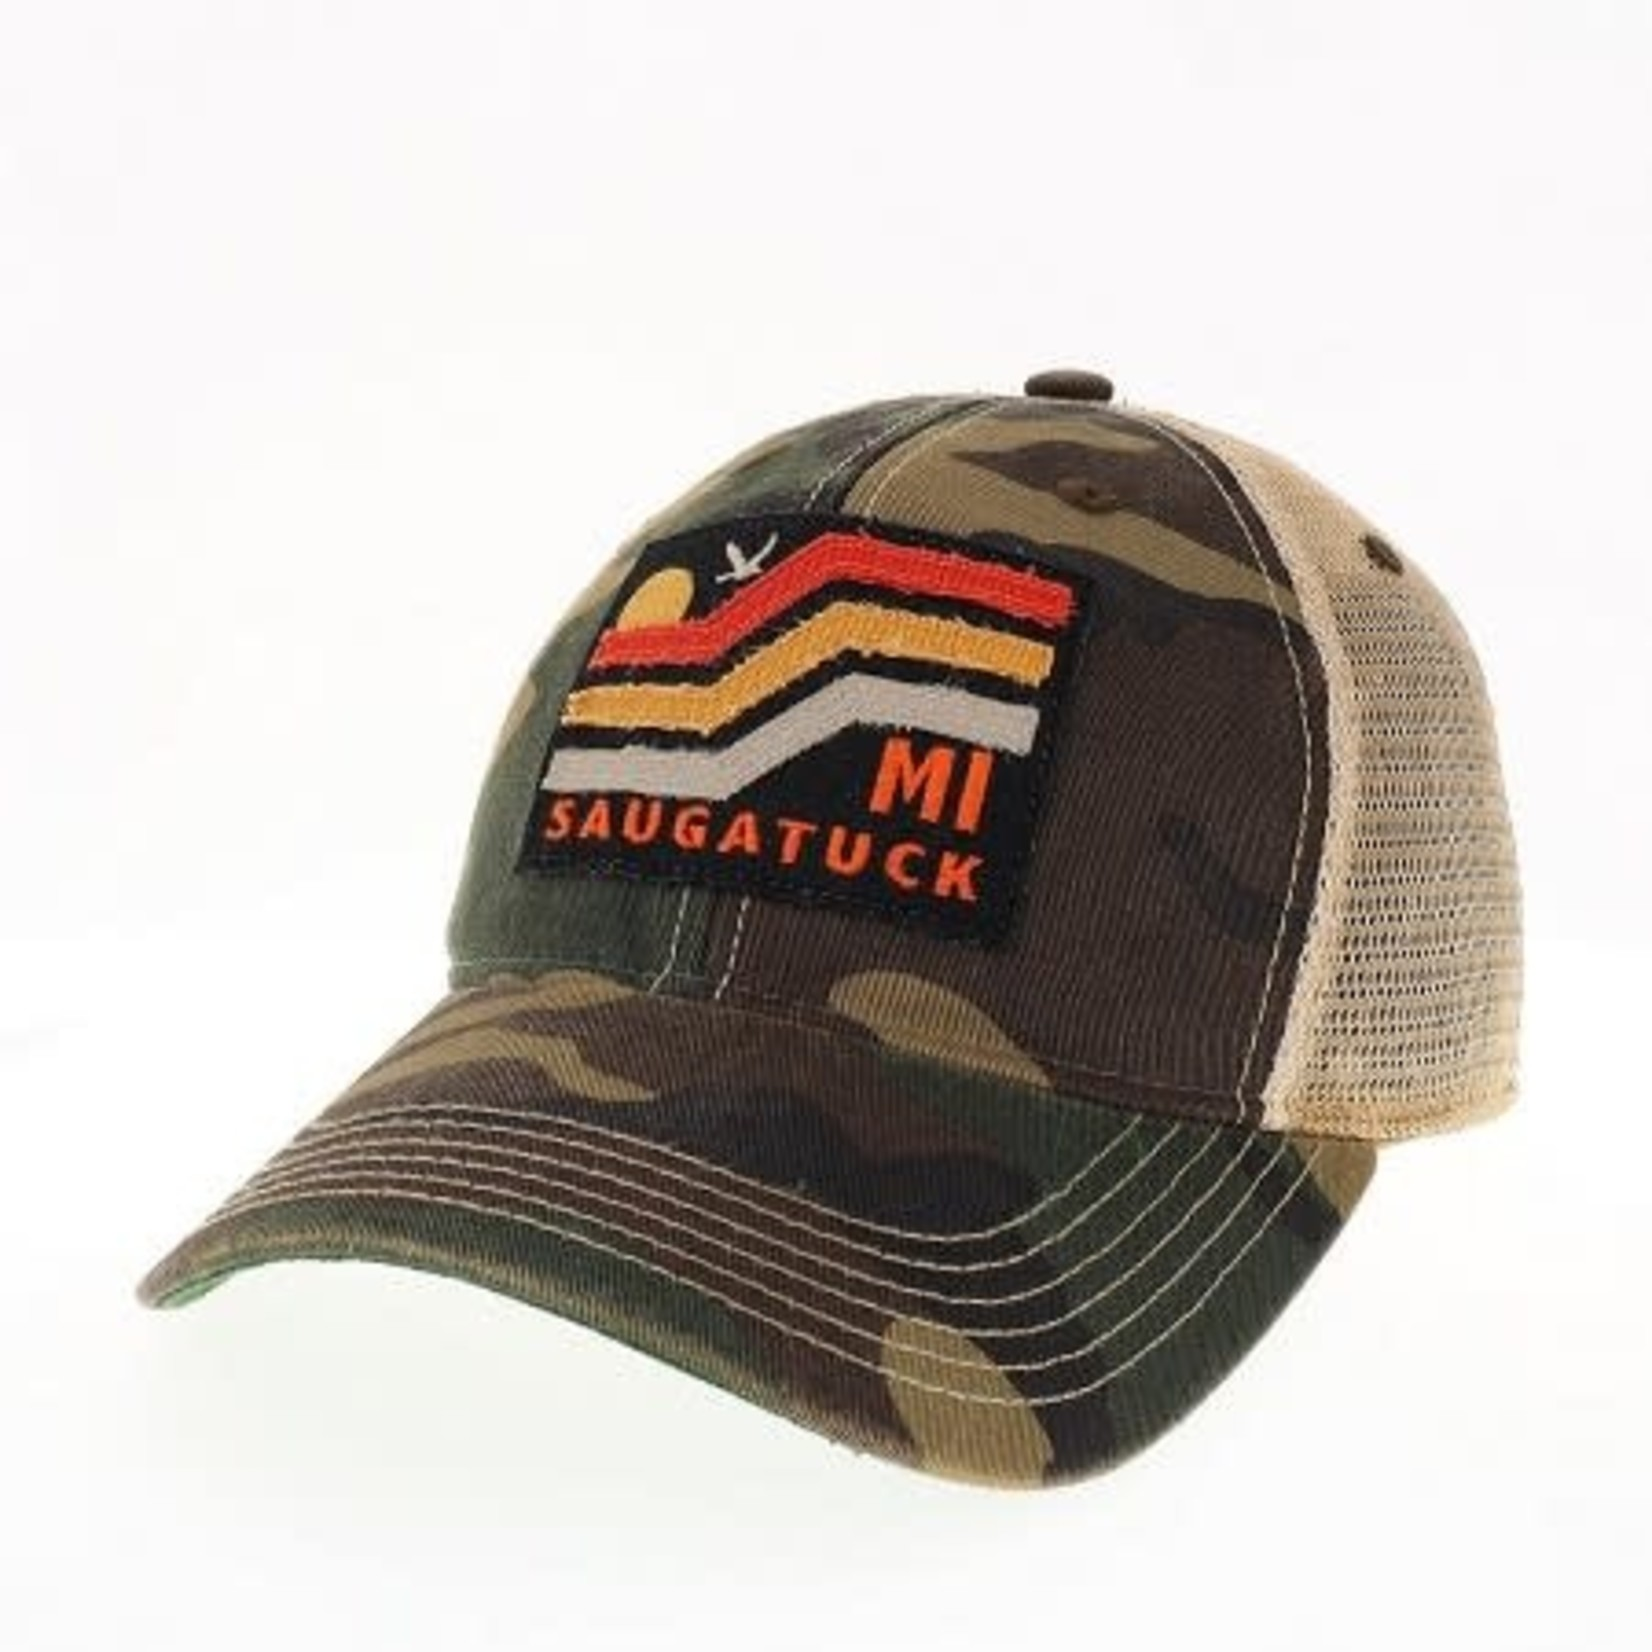 League League Legacy Old Favorite Youth Trucker Hat, Army Camo